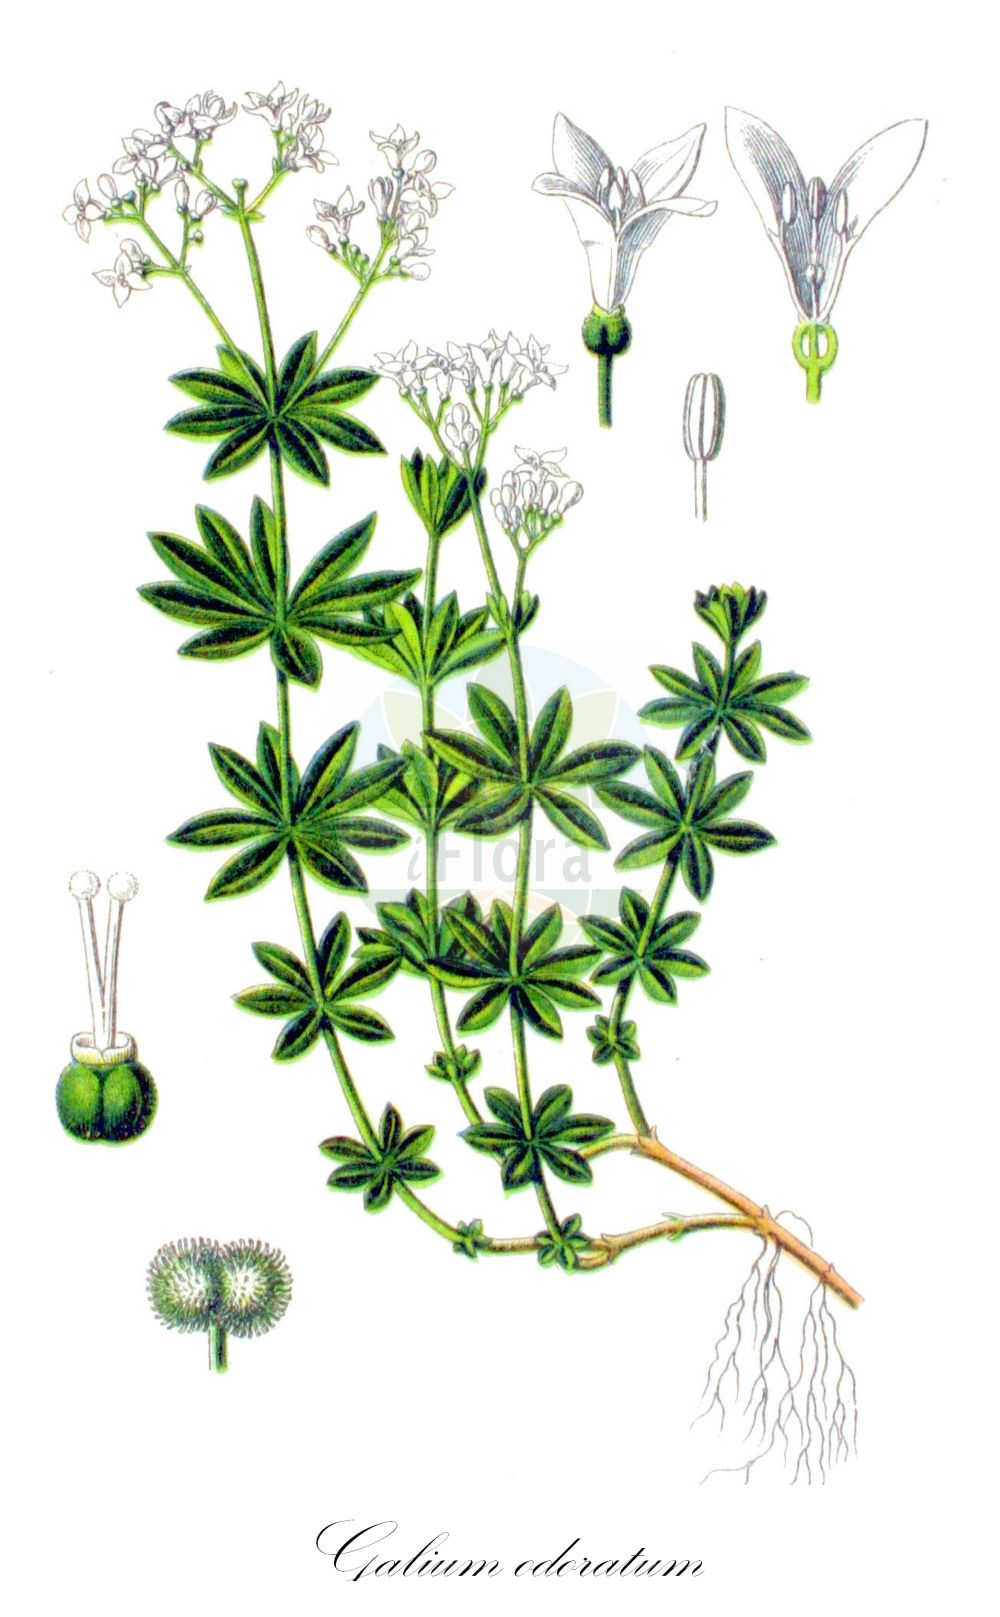 Historische Abbildung von Galium odoratum (Waldmeister - Woodruff). Das Bild zeigt Blatt, Bluete, Frucht und Same. ---- Historical Drawing of Galium odoratum (Waldmeister - Woodruff).The image is showing leaf, flower, fruit and seed.(Galium odoratum,Waldmeister,Woodruff,Asperula eugeniae,Asperula odorata,,Felsen-Meier,Mugweed,Sweetscented Bedstraw,Sweet ,Galium,Labkraut,Bedstraw,Rubiaceae,Roetegewaechse;Kaffeegewaechse;Krappgewaechse;Labkrautgewaechse,Bedstraw family,Blatt,Bluete,Frucht,Same,leaf,flower,fruit,seed,Sturm (1796f))